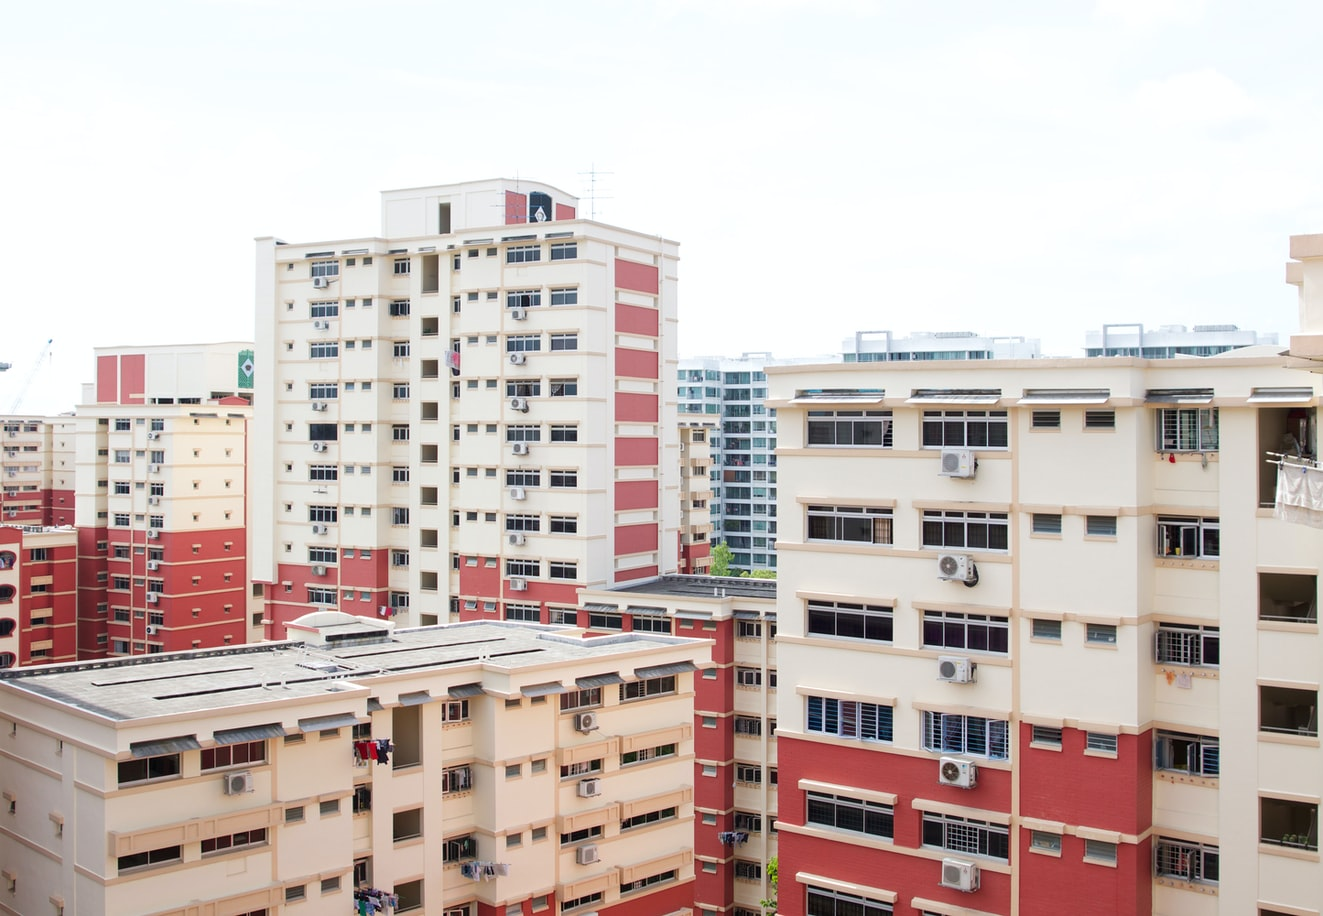 A view from a high level of a cluster of red and white HDB blocks of differing heights.